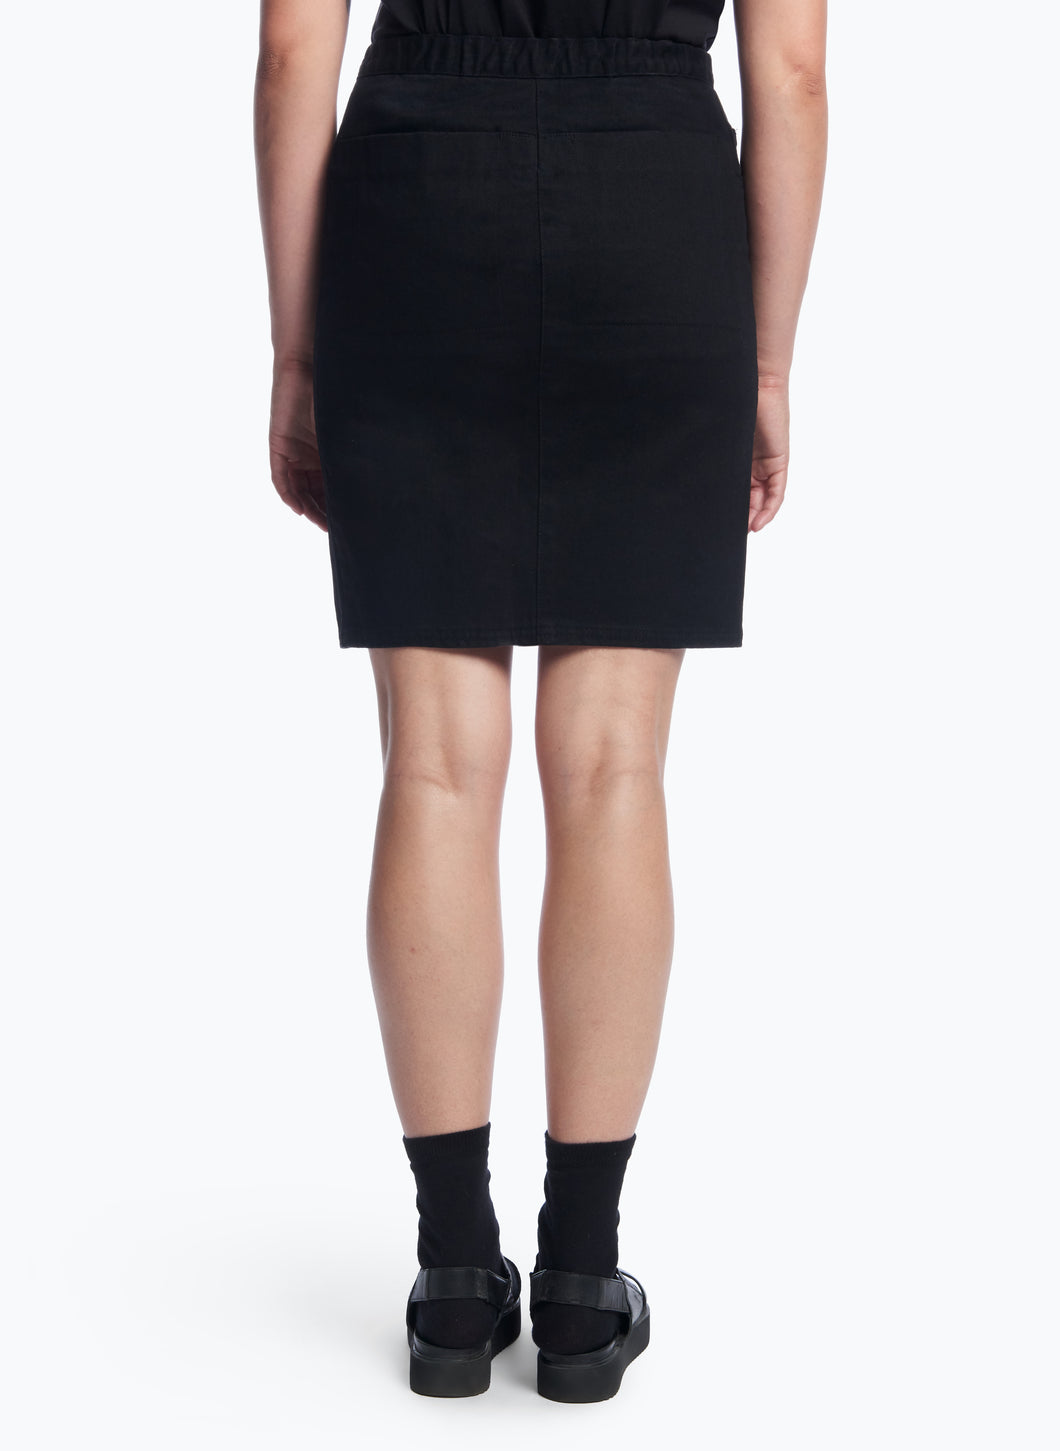 5-Pocket Skirt with Front Cuts in Black Denim